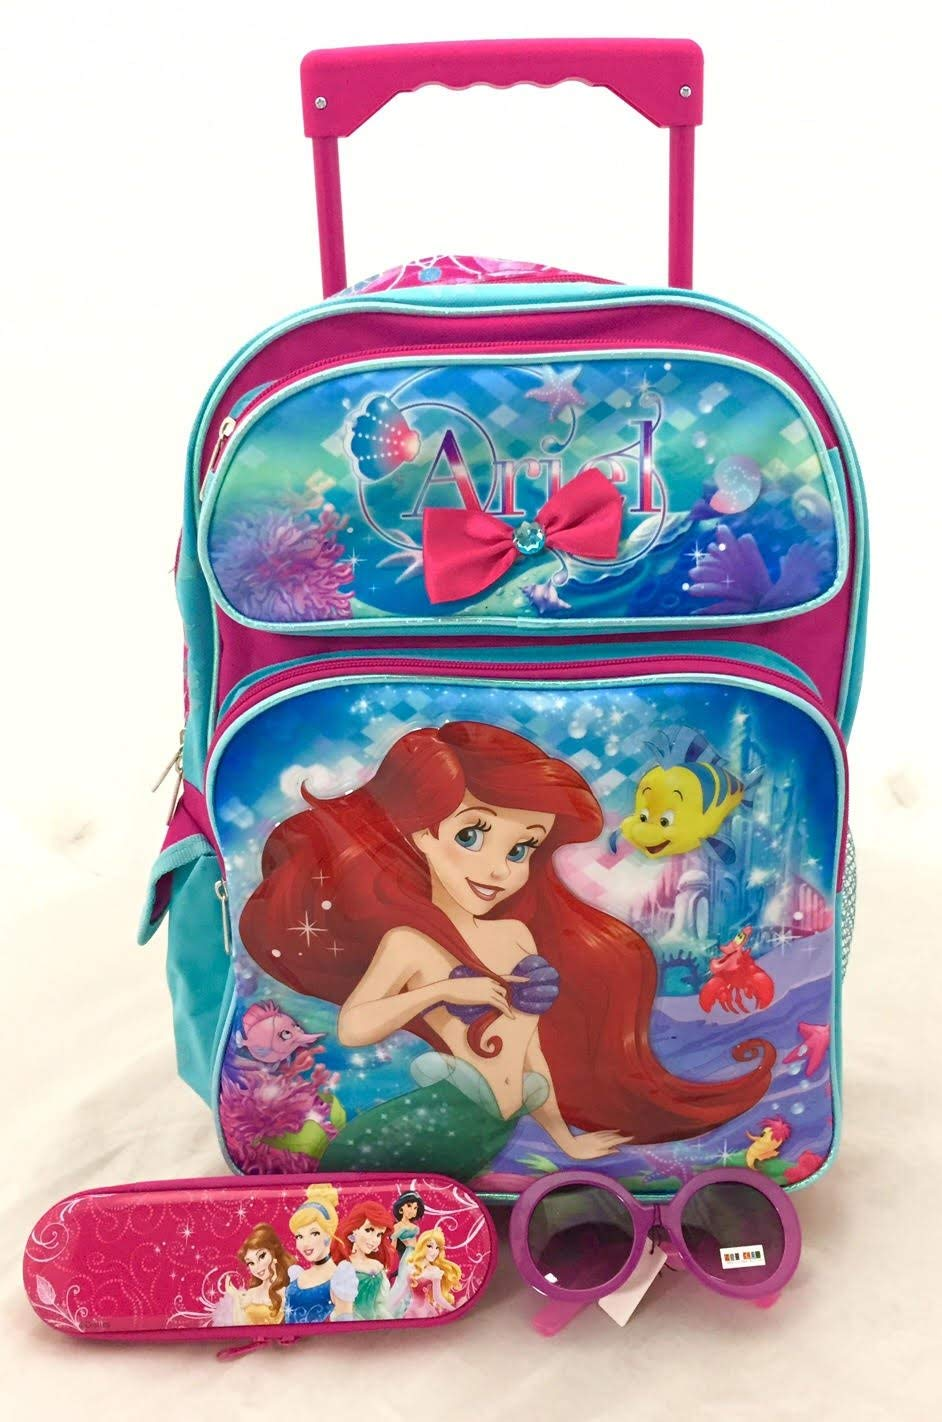 84c7fb4c764 Get Quotations · Christmas Gift - Ariel Mermaid Large Rolling Backpack and  Mickey Body Wash Set